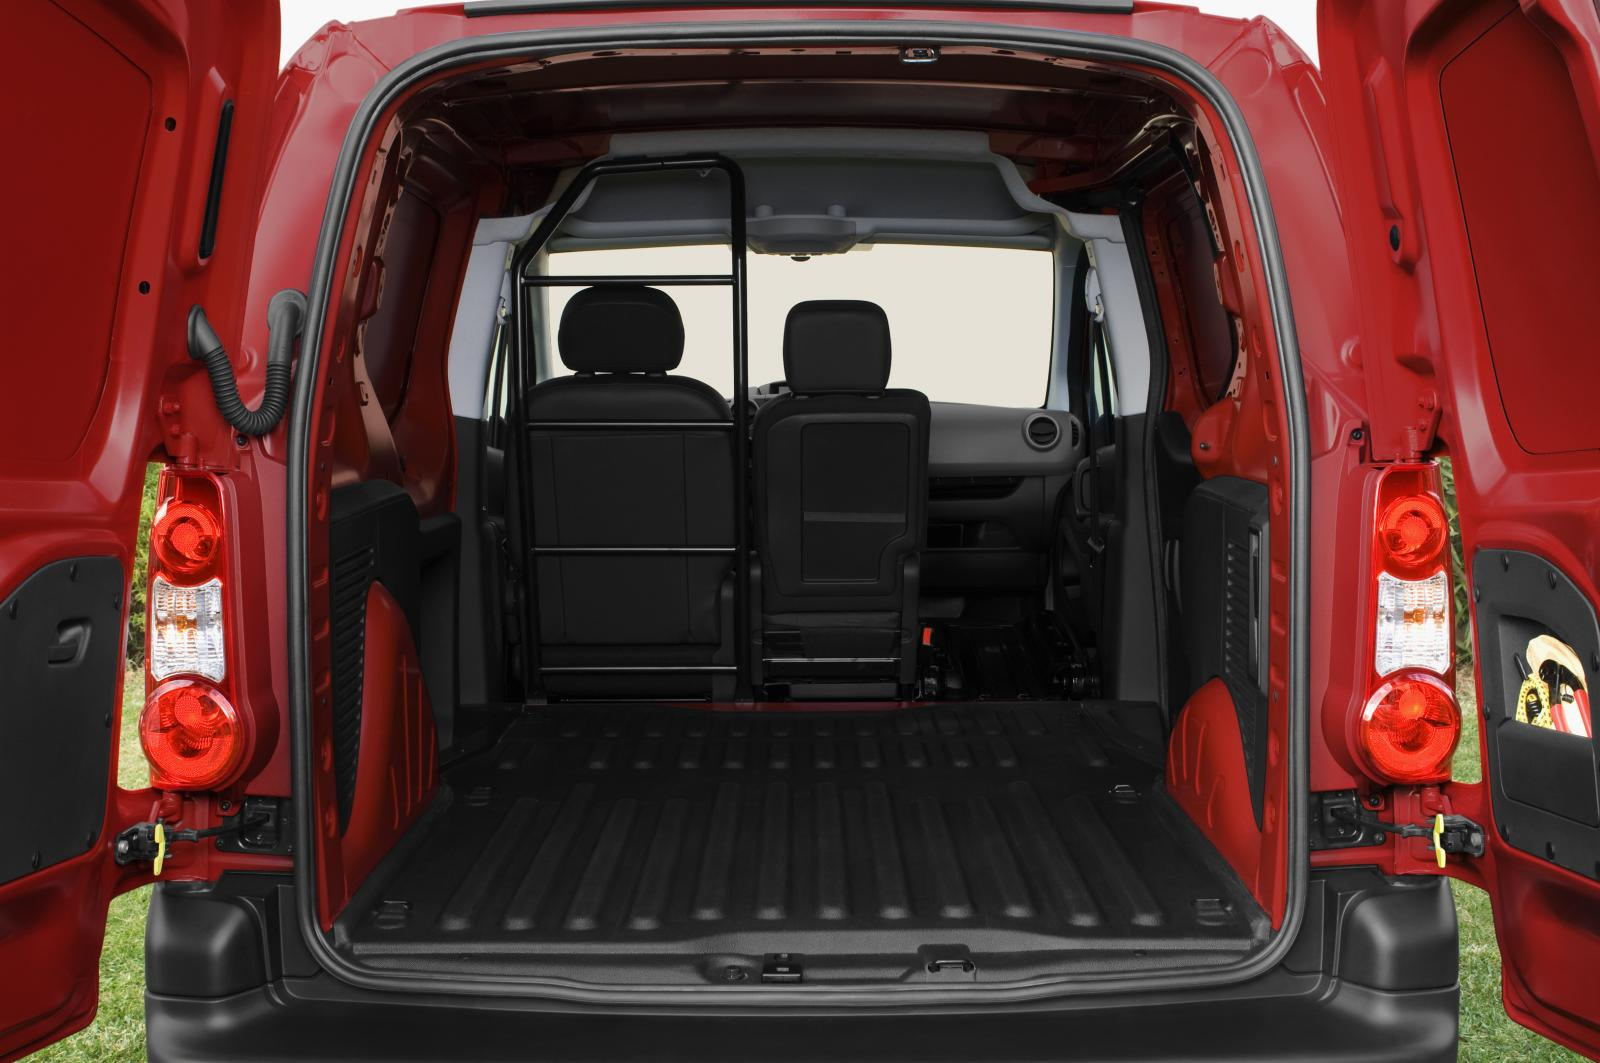 Berlingo 2008 seat folded down